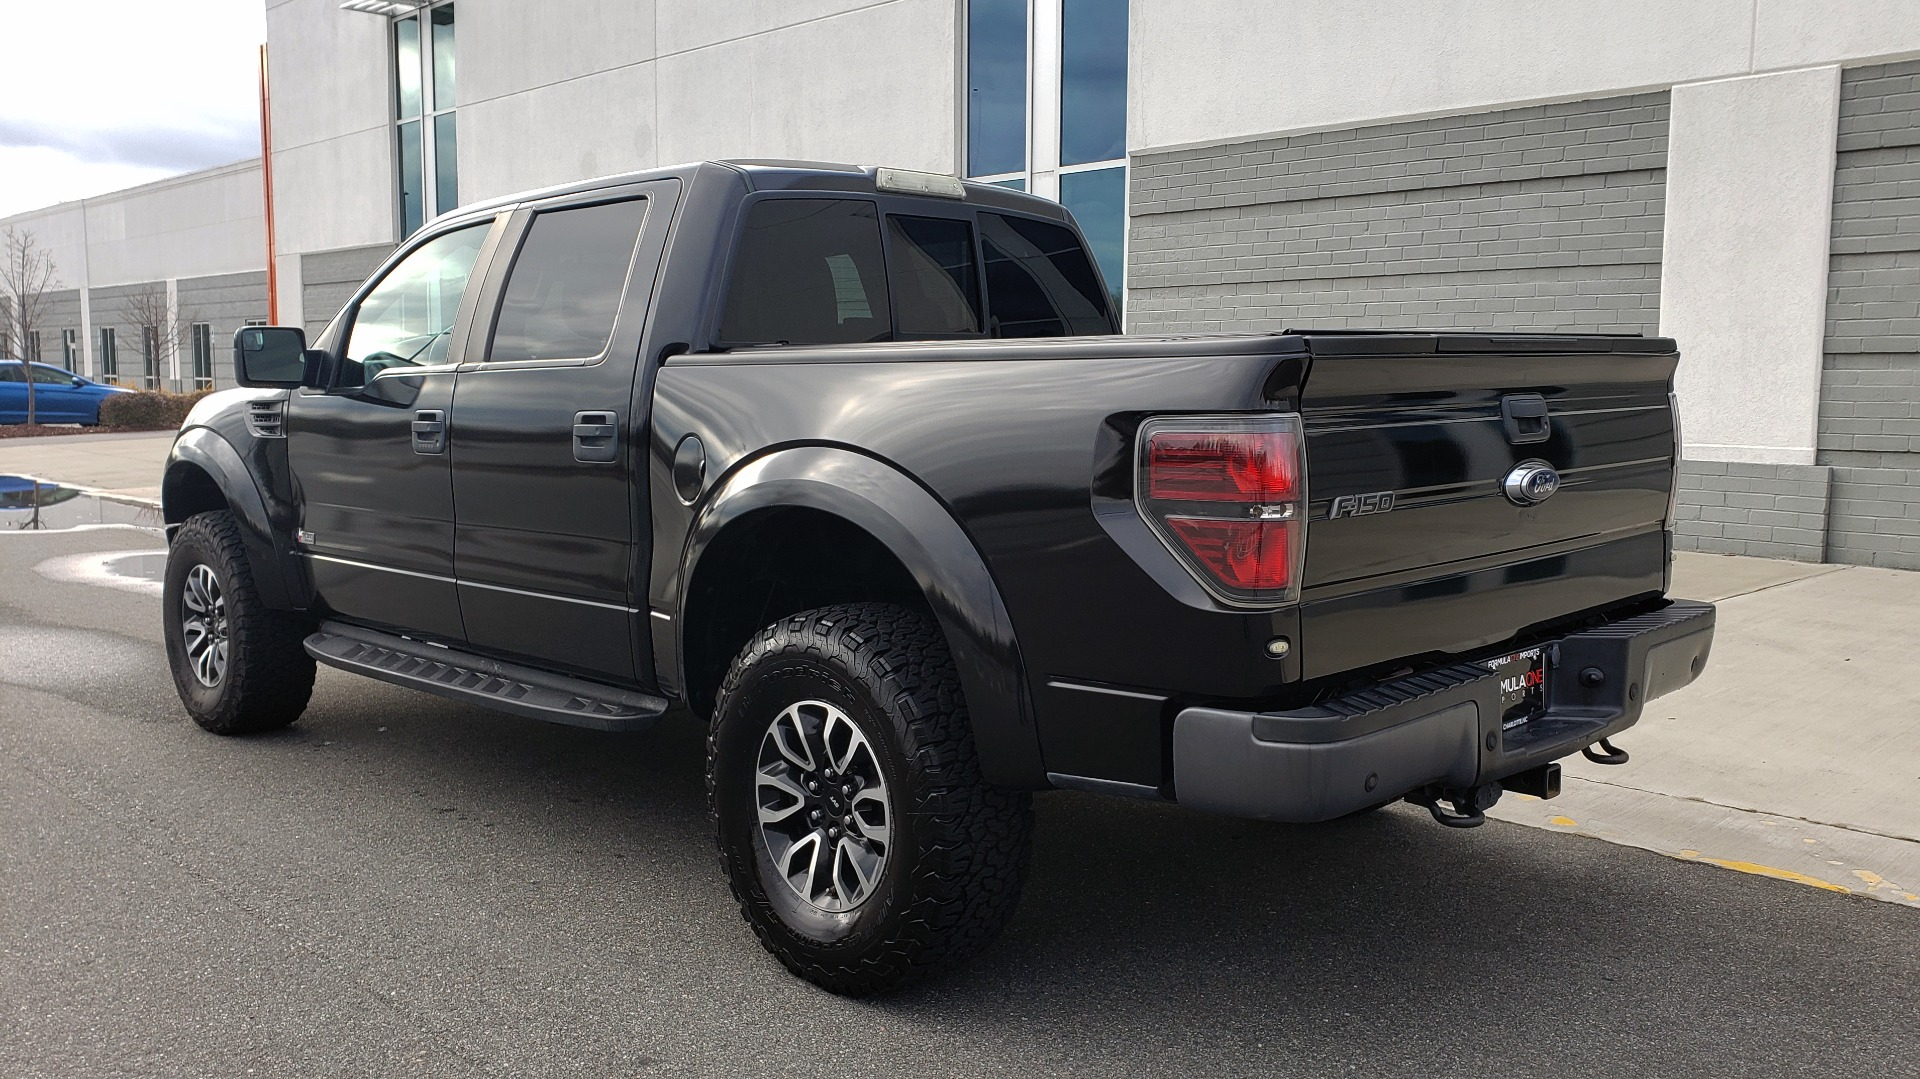 Used 2013 Ford F-150 SVT RAPTOR 4X4 SUPERCREW / 6.2L V8 / 6-SPD AUTO / NAV / LUX PKG for sale Sold at Formula Imports in Charlotte NC 28227 5